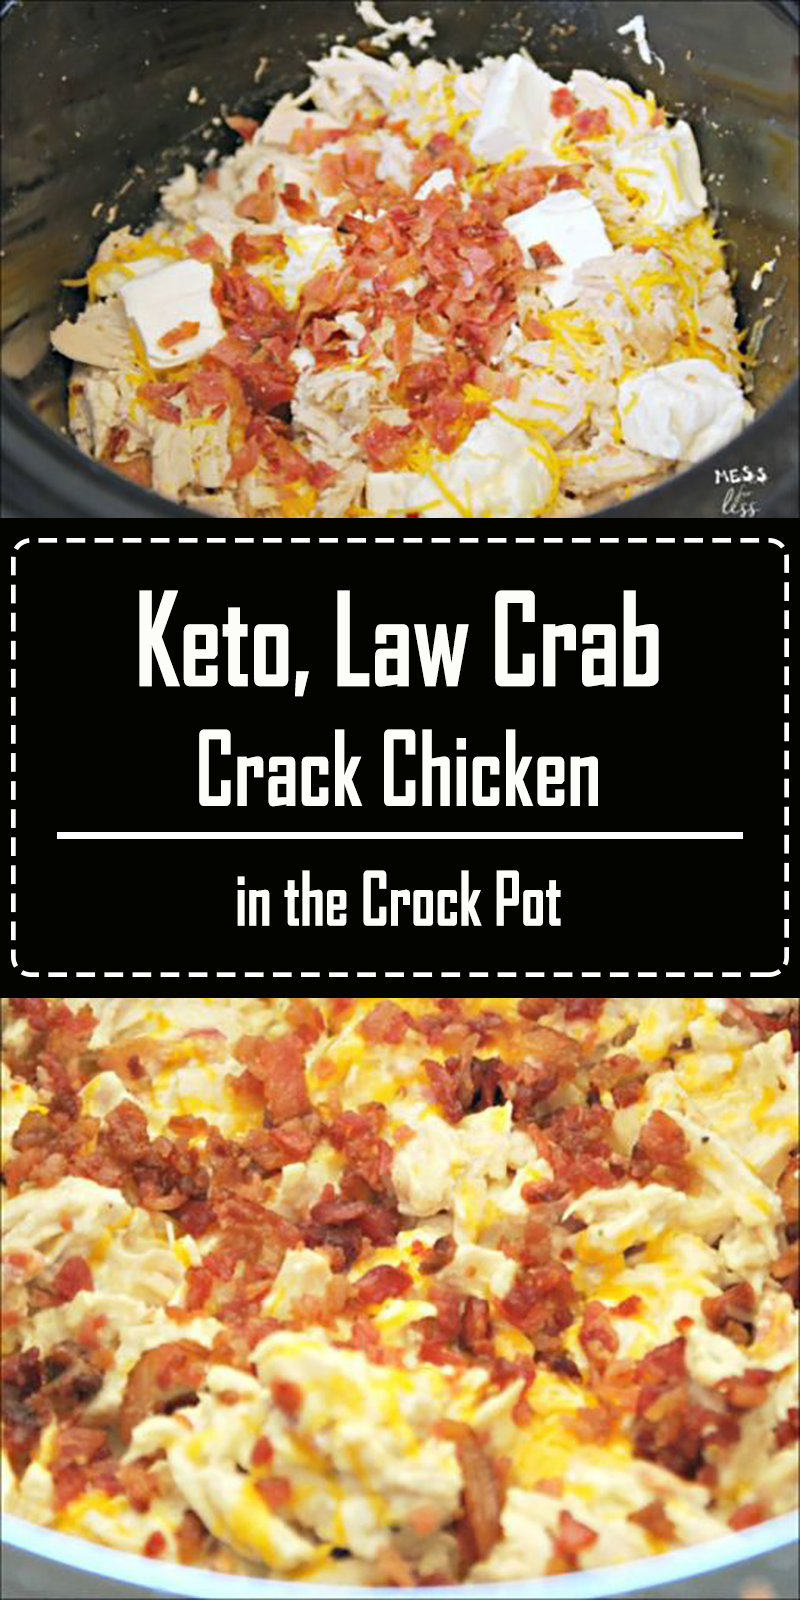 This Crack Chicken in the Crock Pot is keto friendly and low carb. But you don't have to follow a low carb lifestyle to enjoy it. The whole family will love this creamy, cheesy chicken dish. #keto #lowcarb #crockpot #slowcooker #crackchicken #HealthyDinnerRecipesEasy